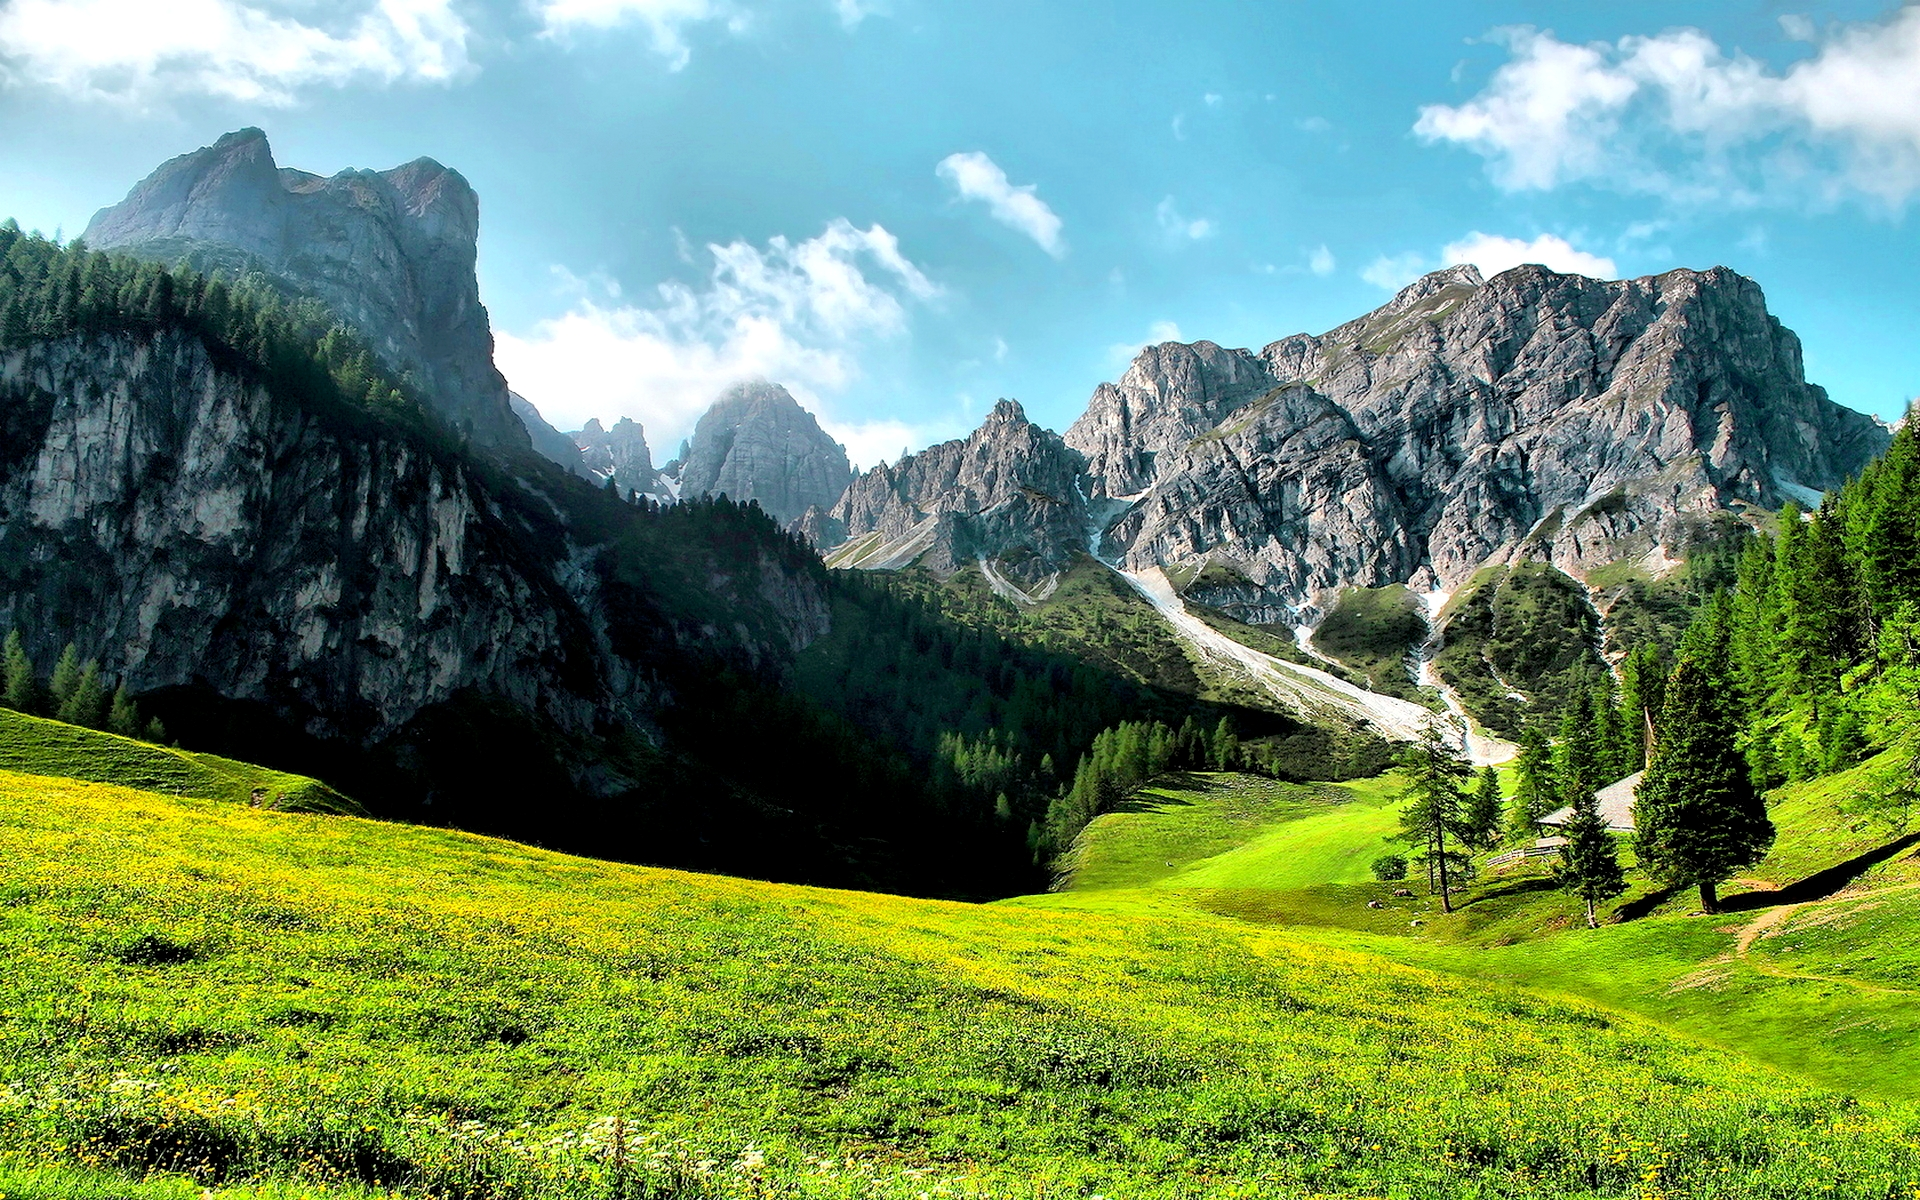 Mountain Valley Backgrounds 29913 1920x1200 px